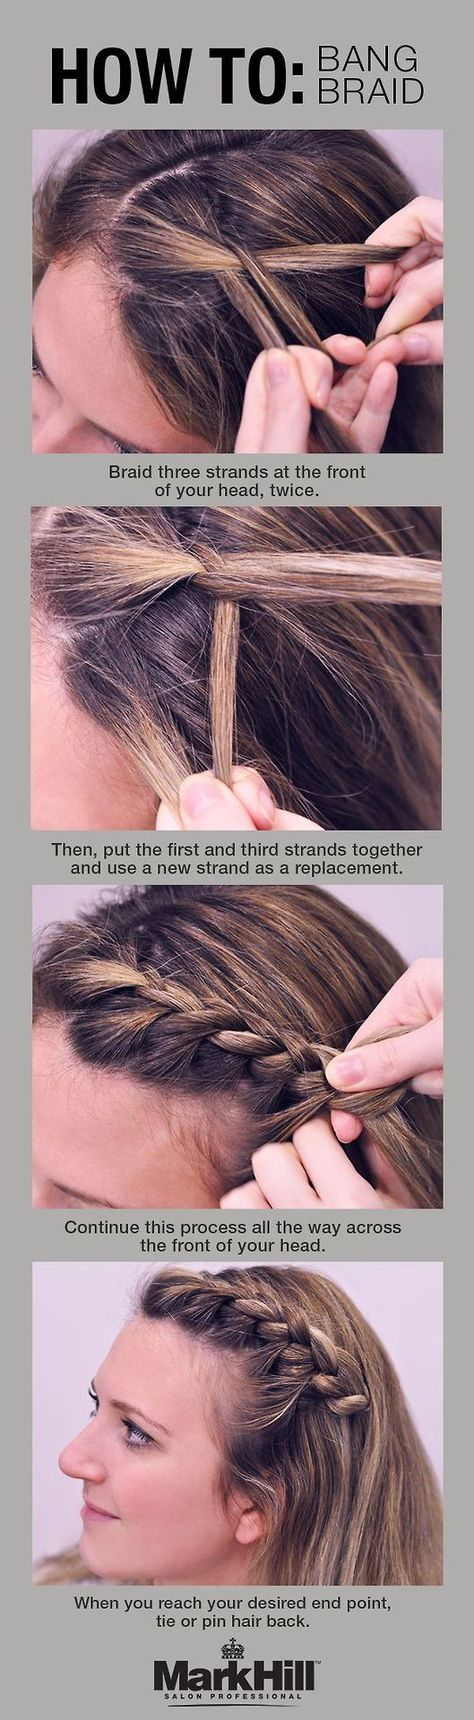 How to: Bang Braid  Very simple step by step instructions and easy to follow